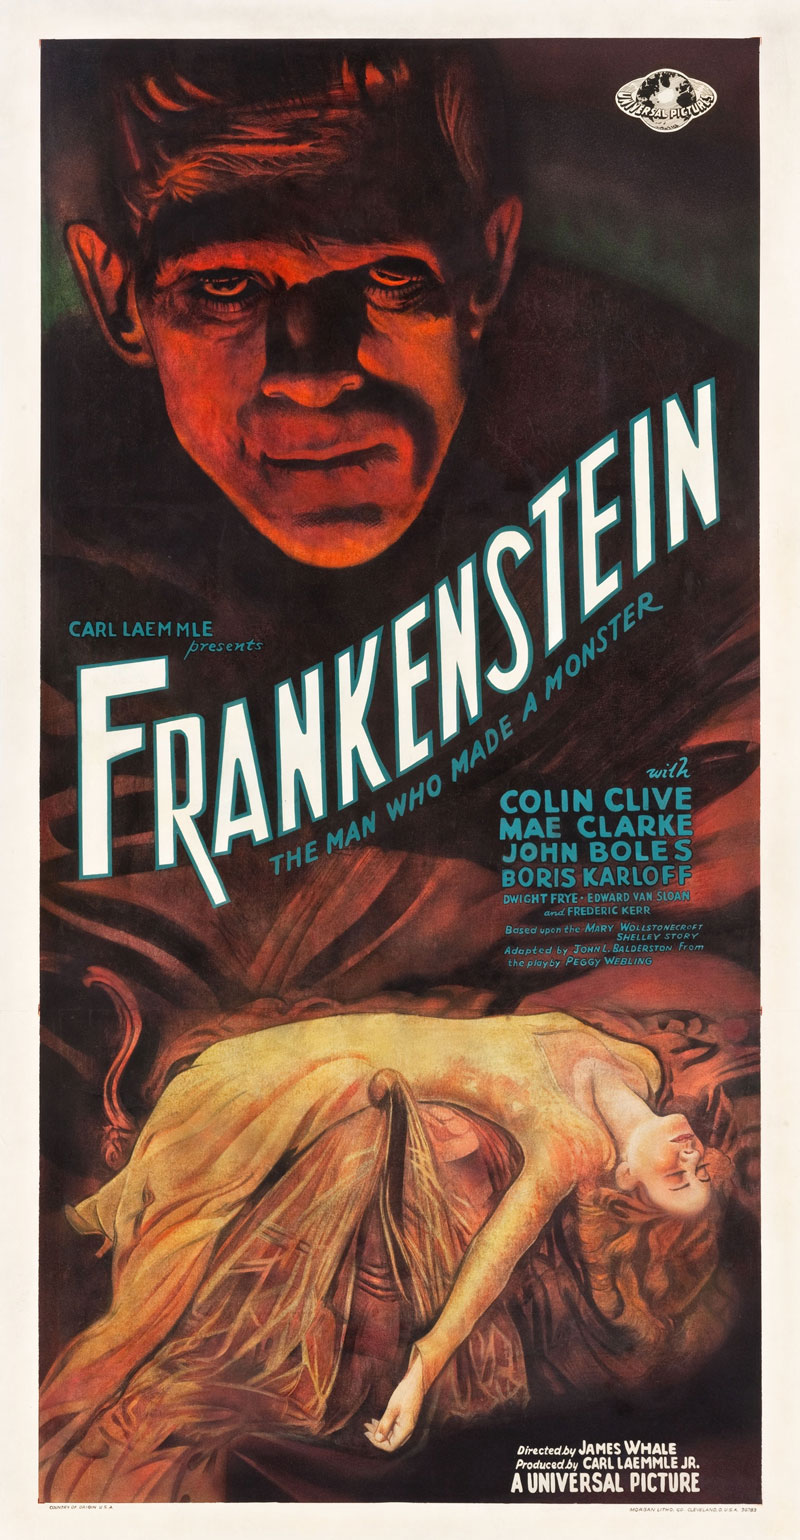 Frankenstein 1931 summary